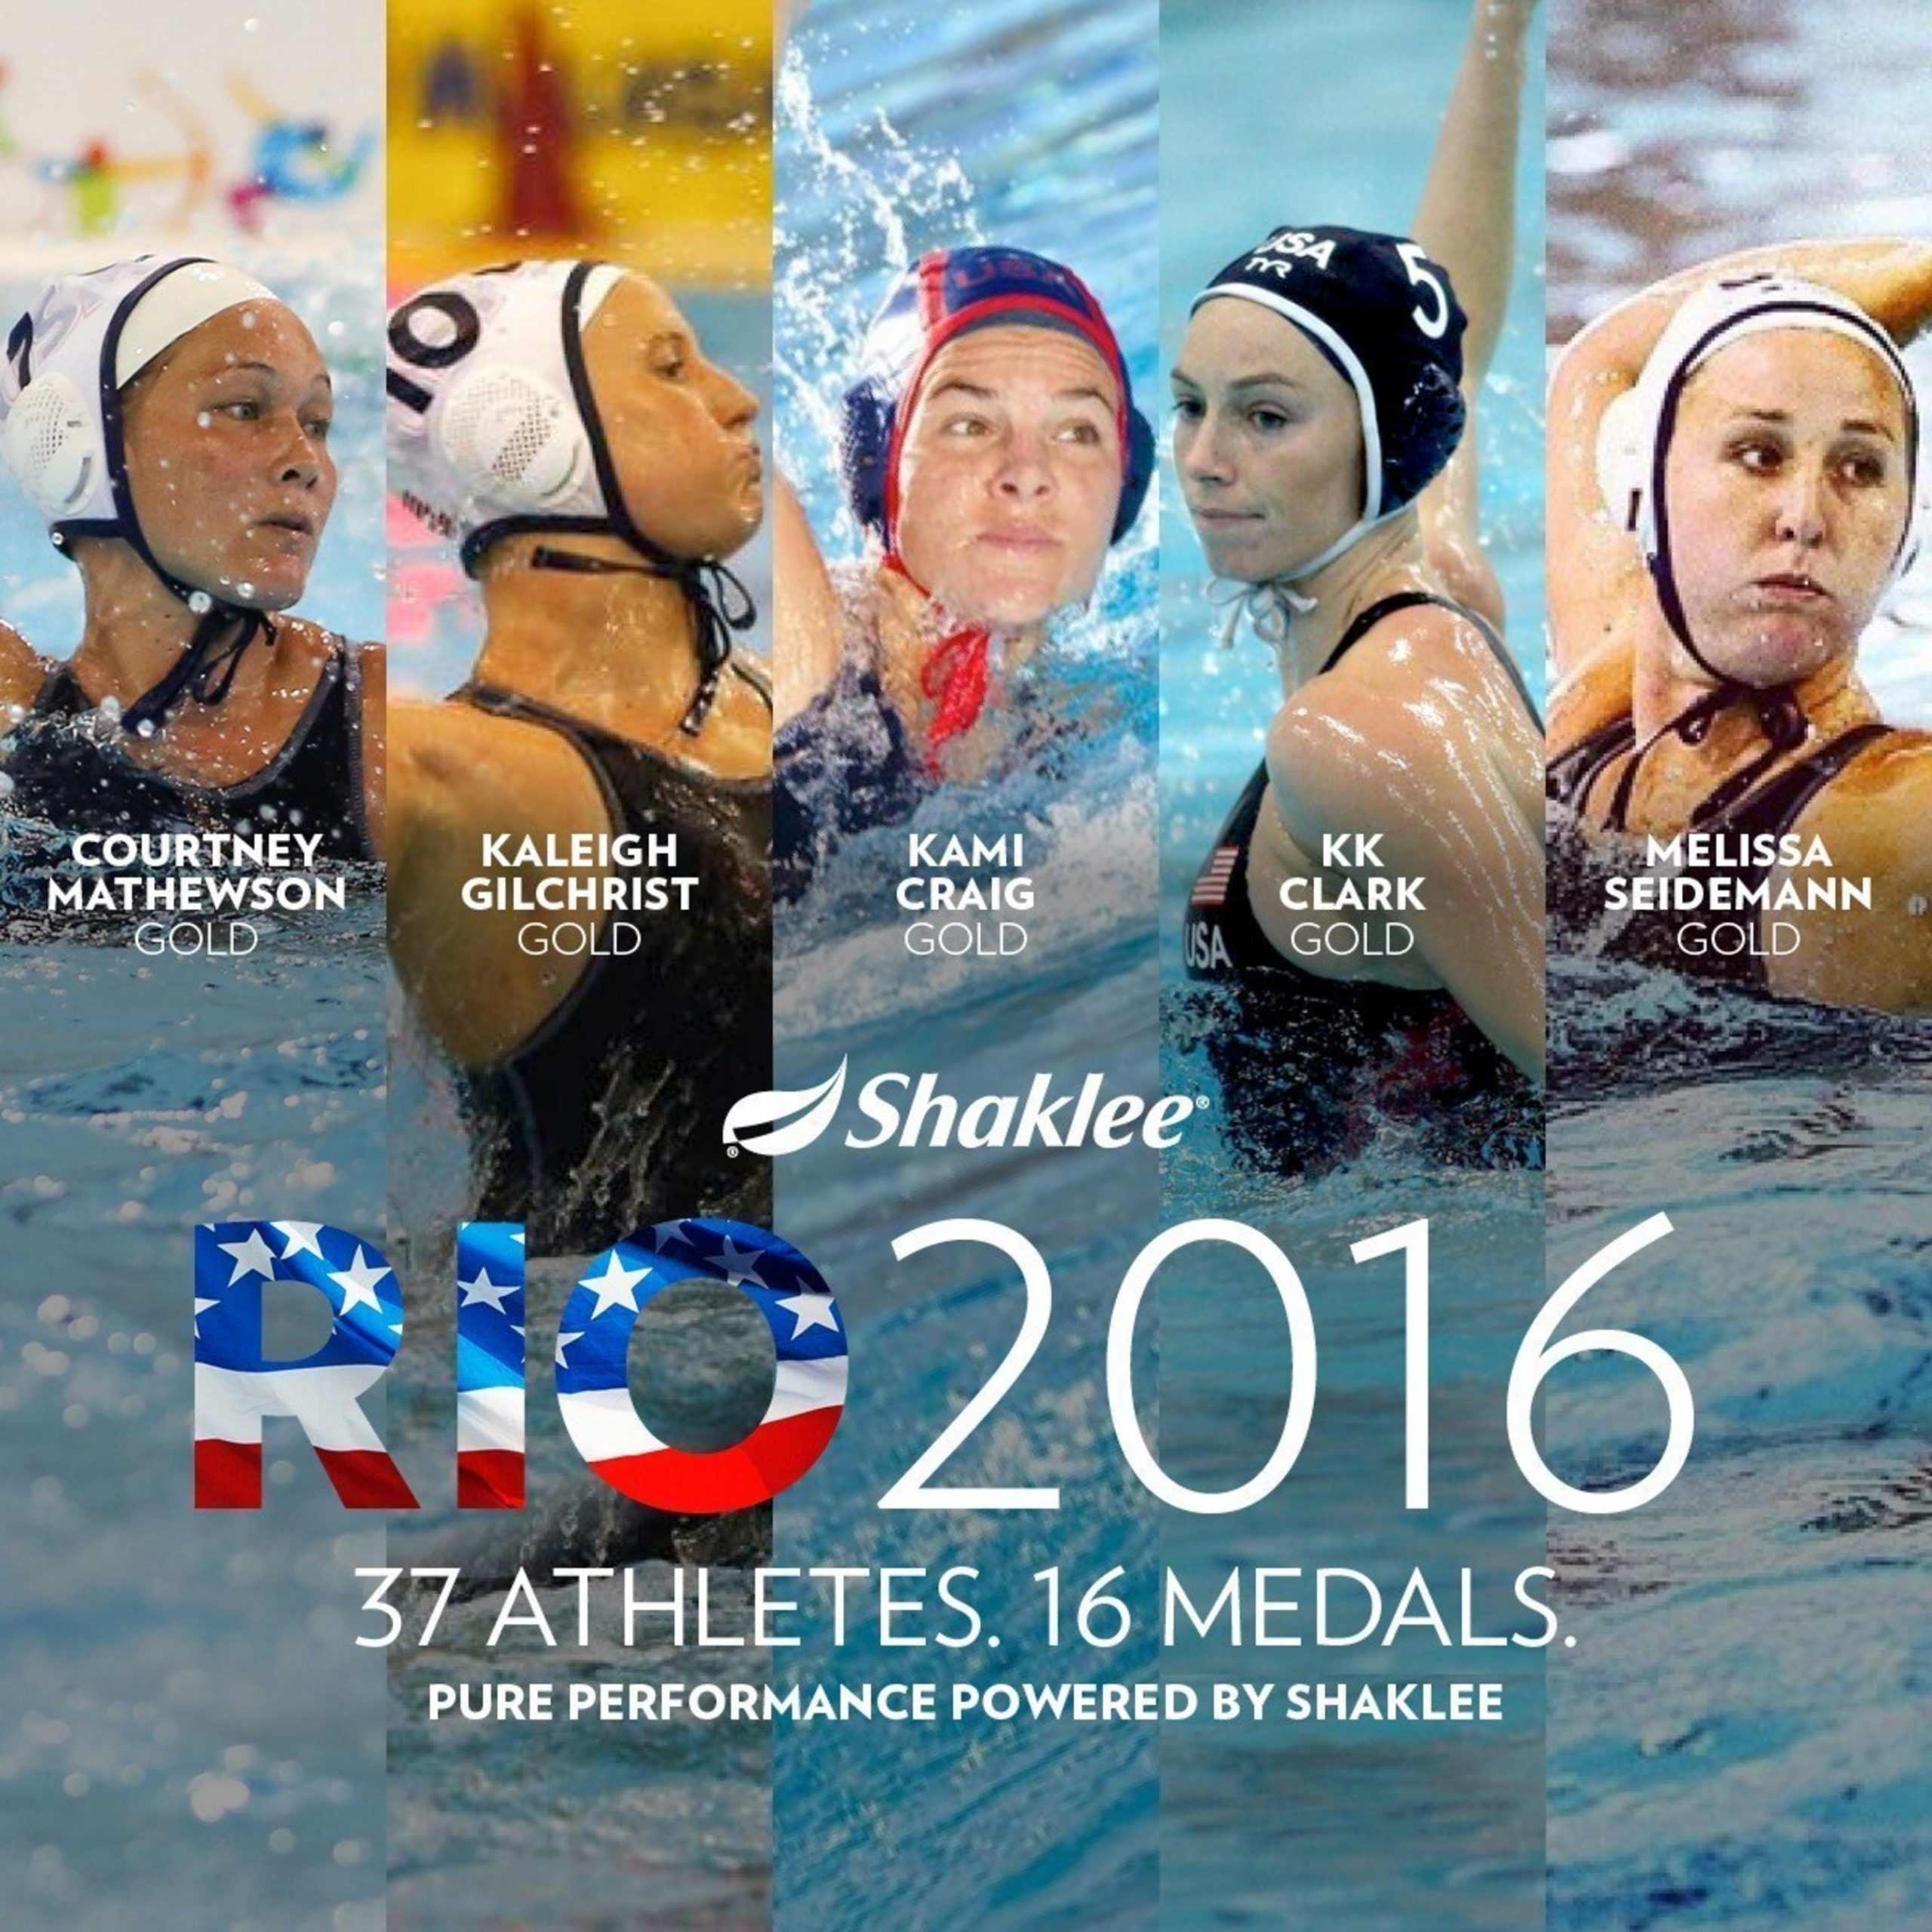 Shaklee Pure Performance Athletes Earn 16 Medals